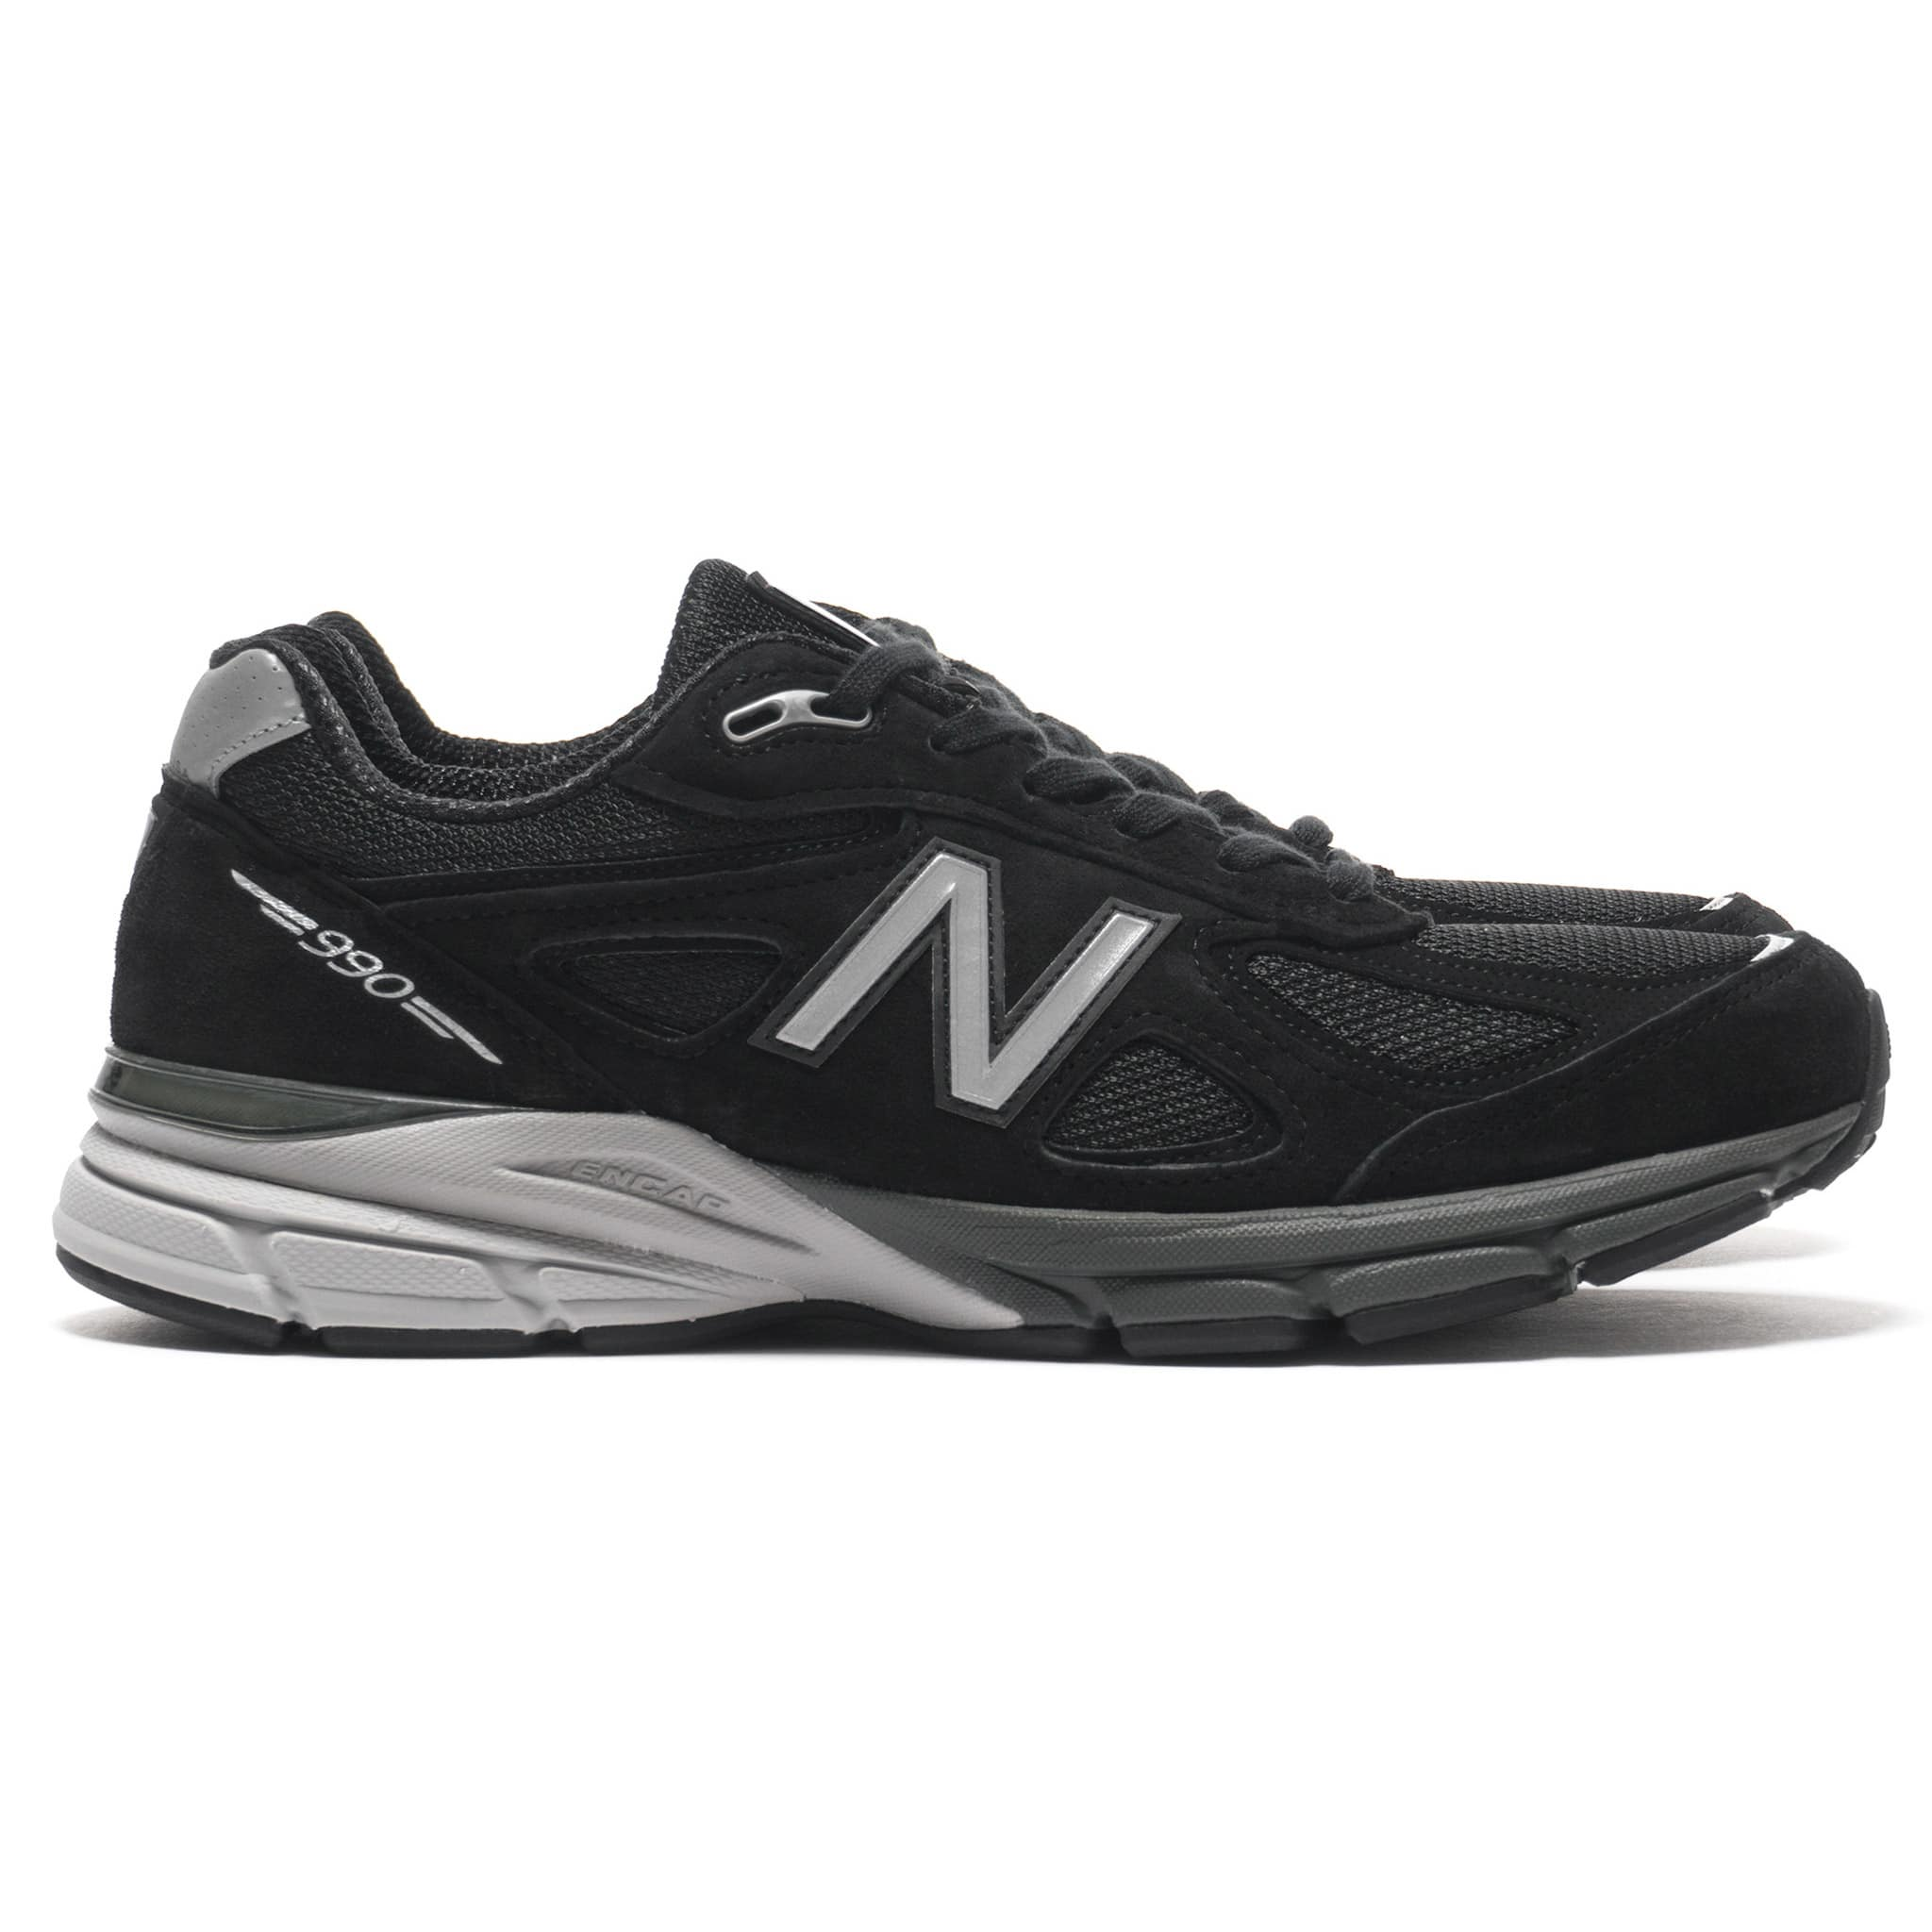 los angeles 8c25f cb580 New Balance M990 V4 Arrives in Two Black Colourways   HAVEN